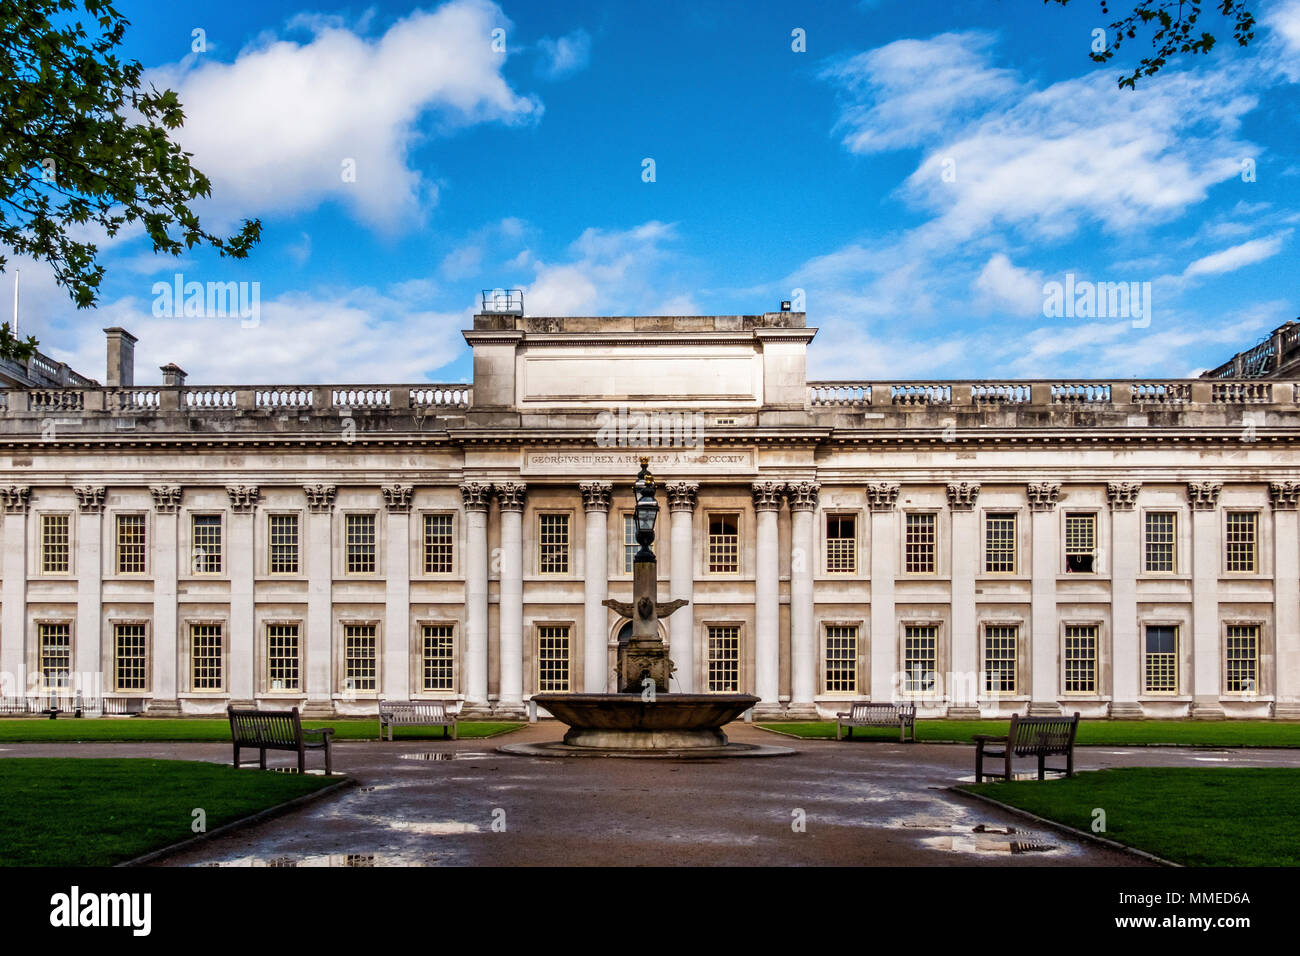 London, Greenwich. Trinity Laban Conservatoire of Music and Dance in King Charles Court. Historic Old Royal Naval College Building - Stock Image